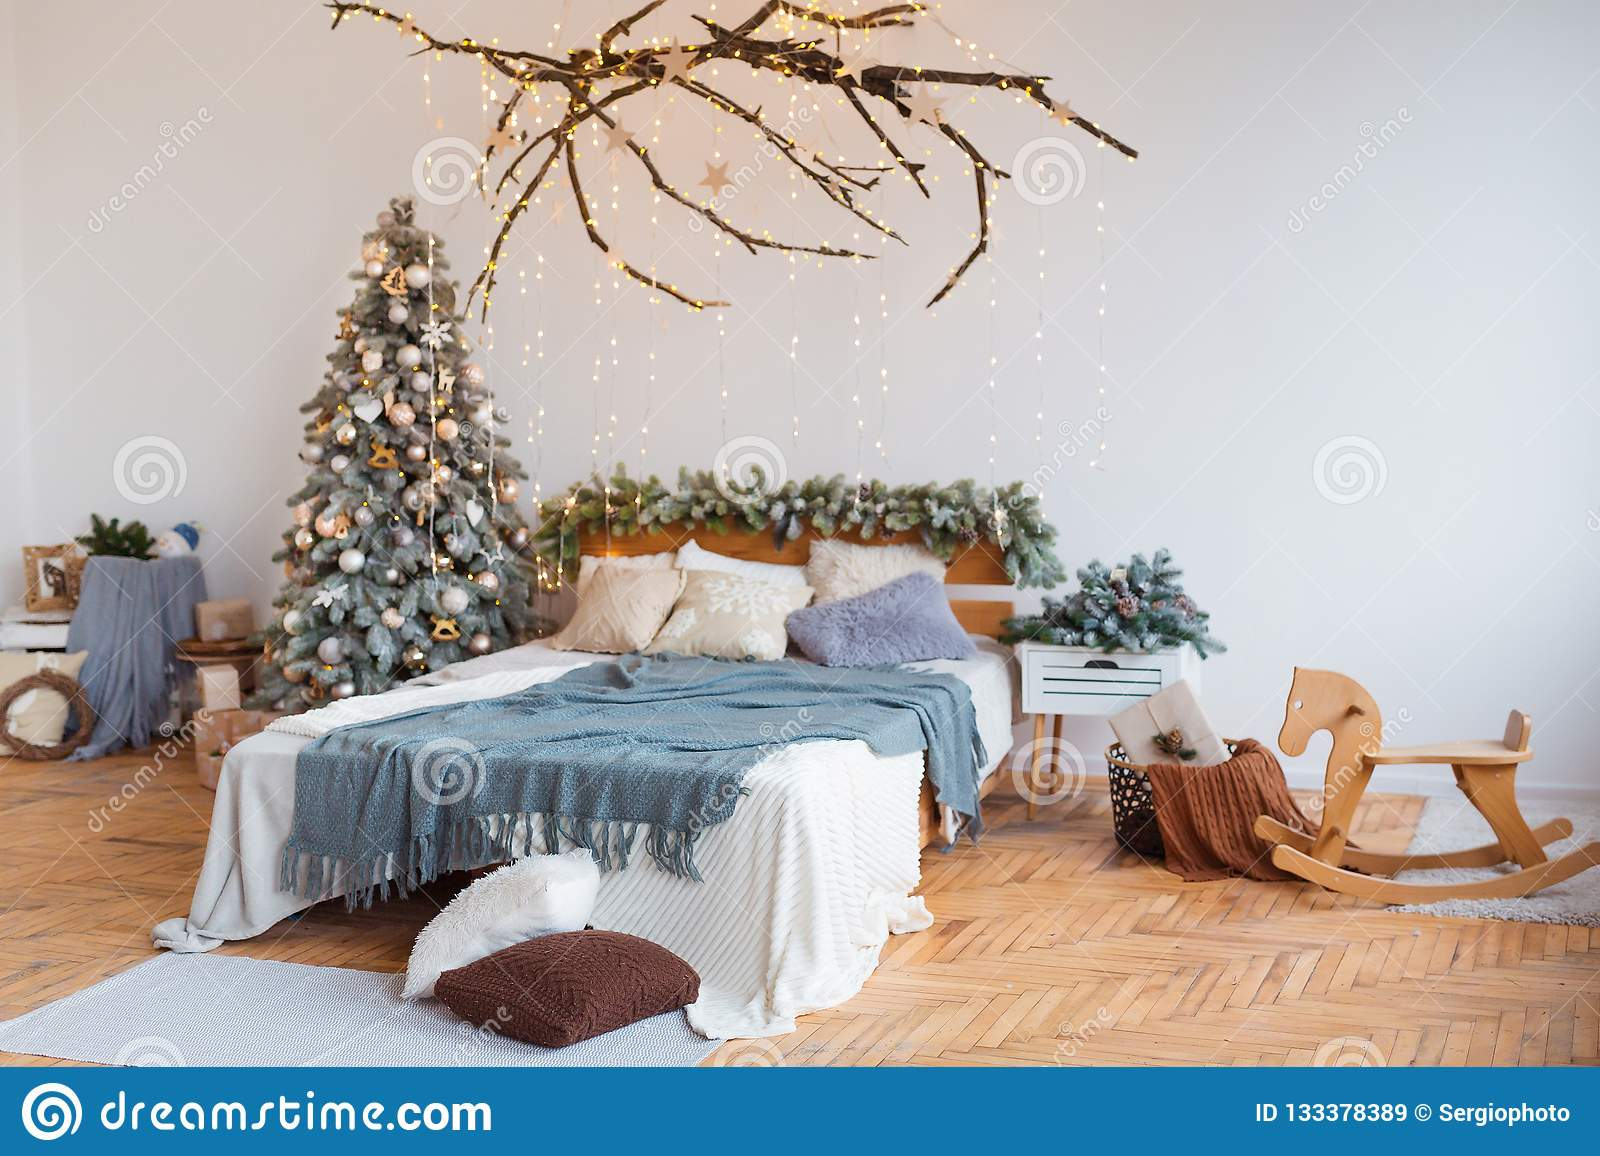 White Decoration Bedroom White Cozy Modern Bedroom With Holiday Decoration Wooden Bed In